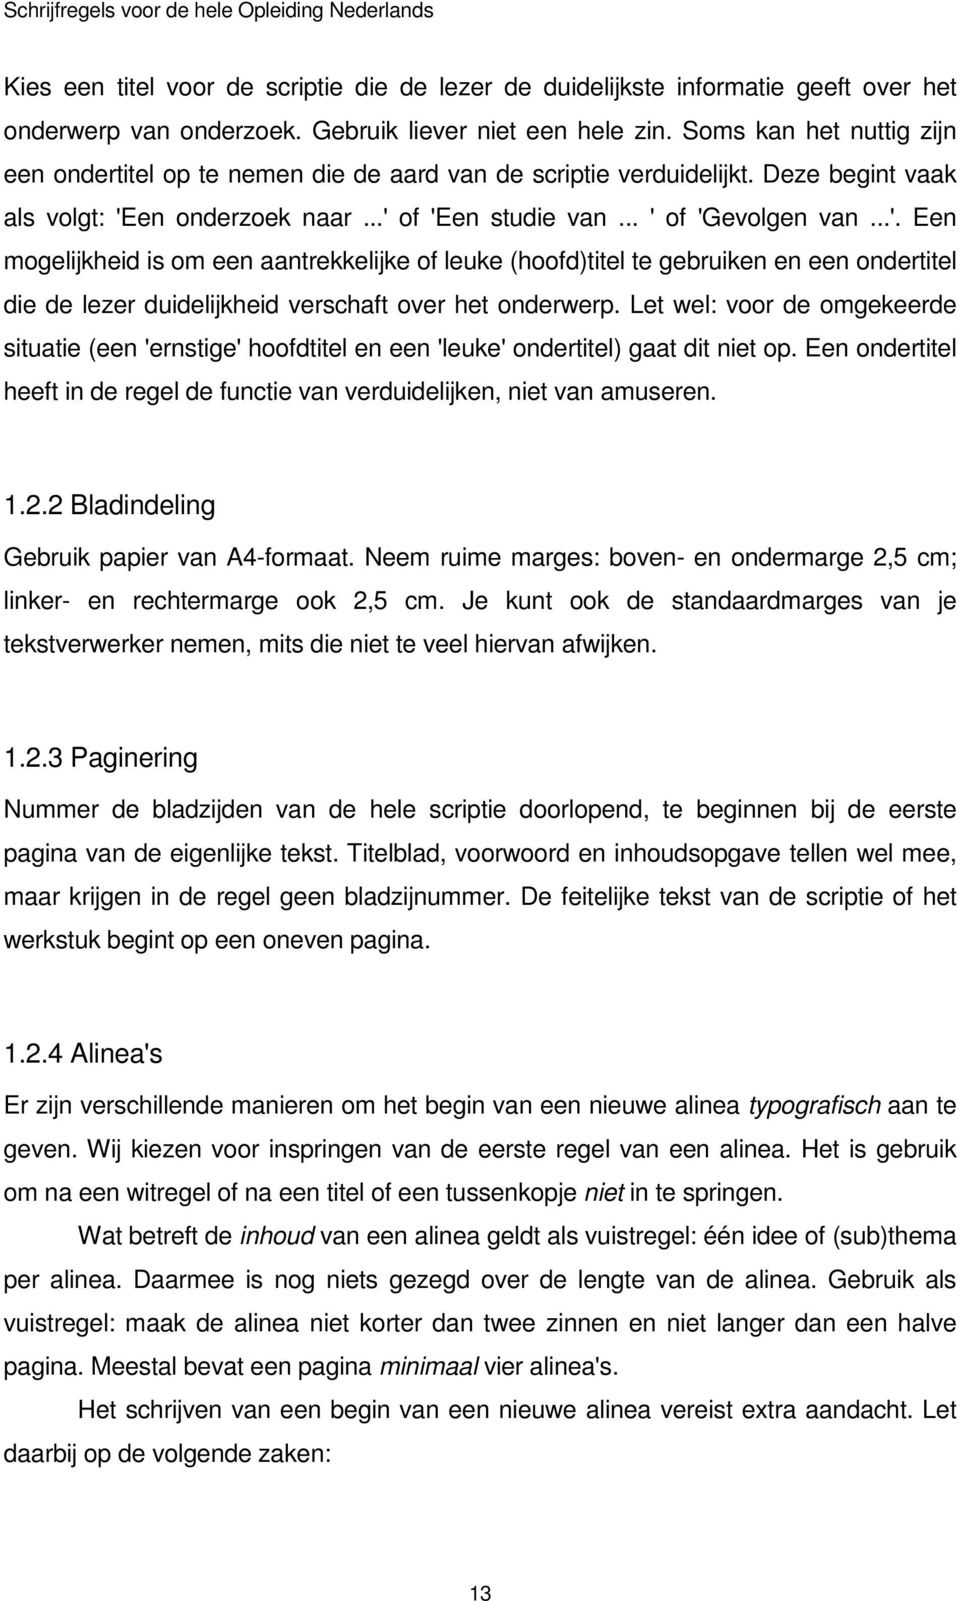 thesis kuleuven online Modelos thesis  faculty of engineering science katholieke universiteit leuven thesis (english version) sobre english version of template for theses published at faculty of engineering science at katholieke universiteit leuven ( ku leuven .